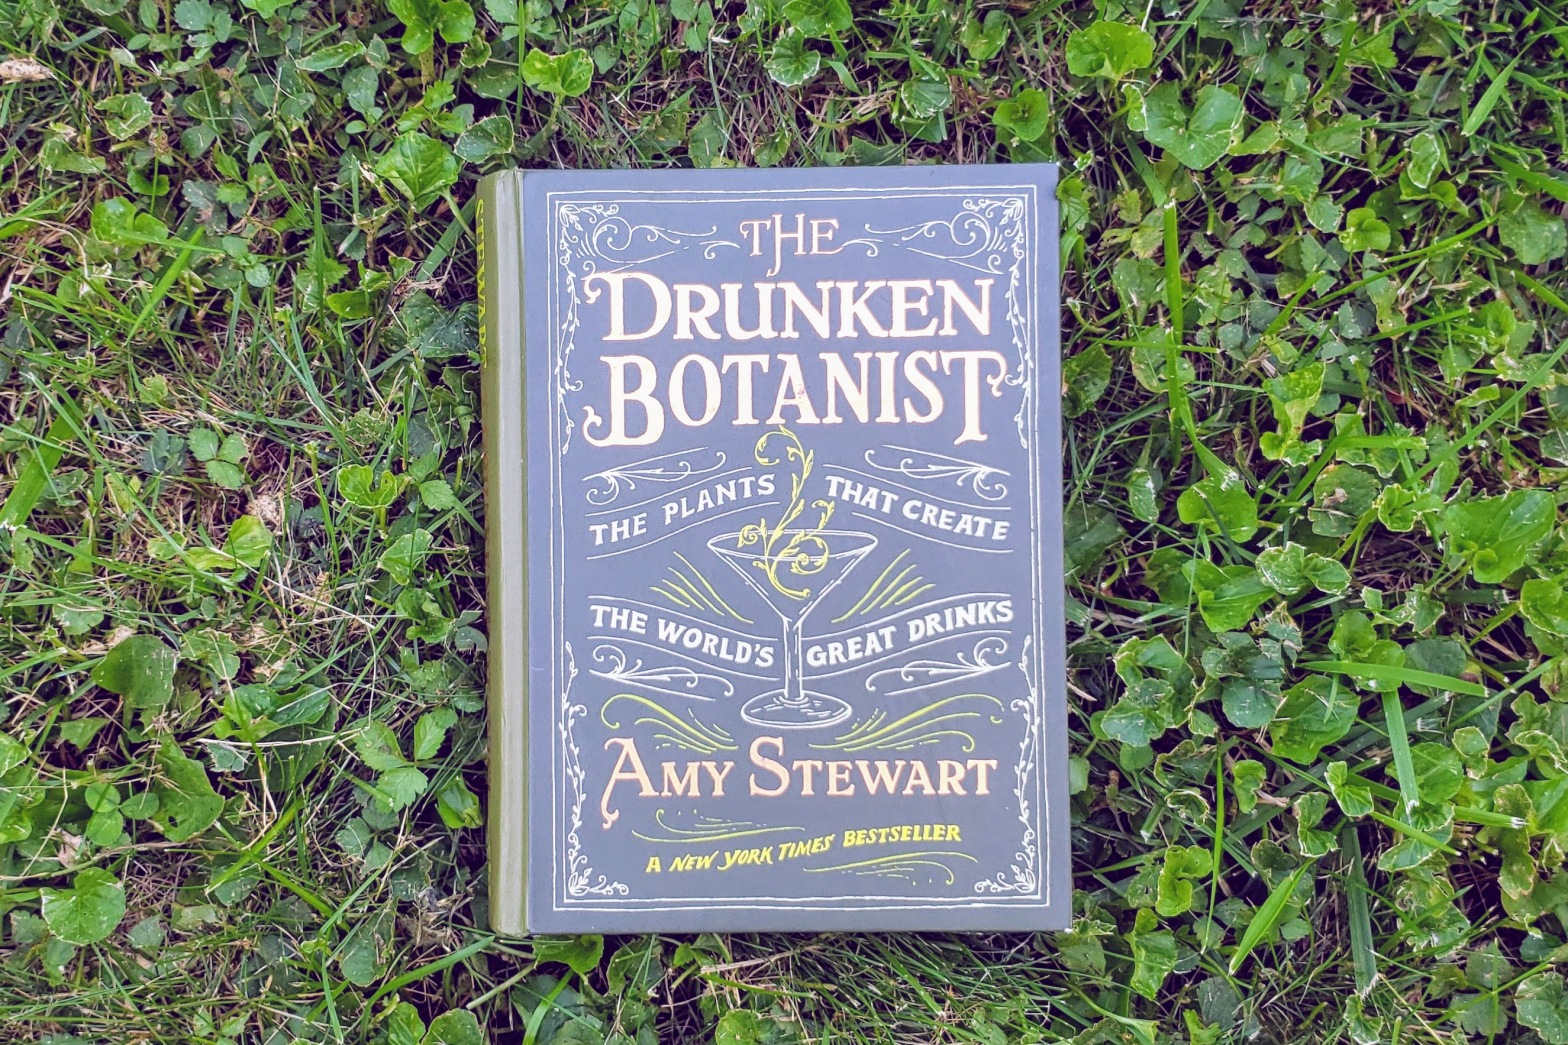 The Drunken Botanist by Amy Stewart book in grass